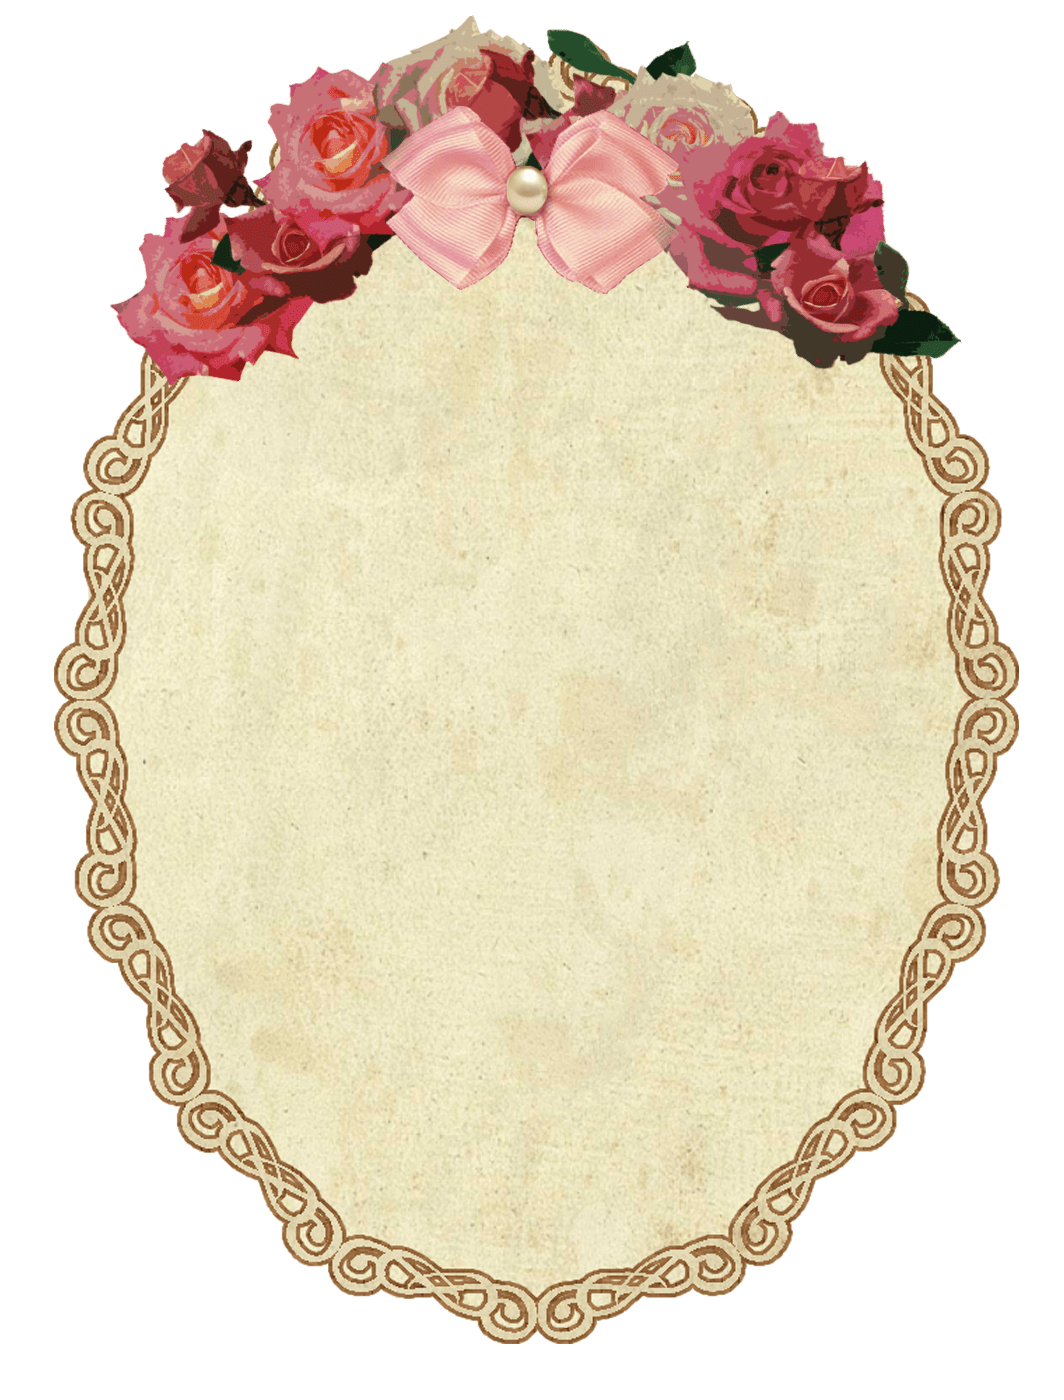 Vintage with flowers photos. Oval picture frame png